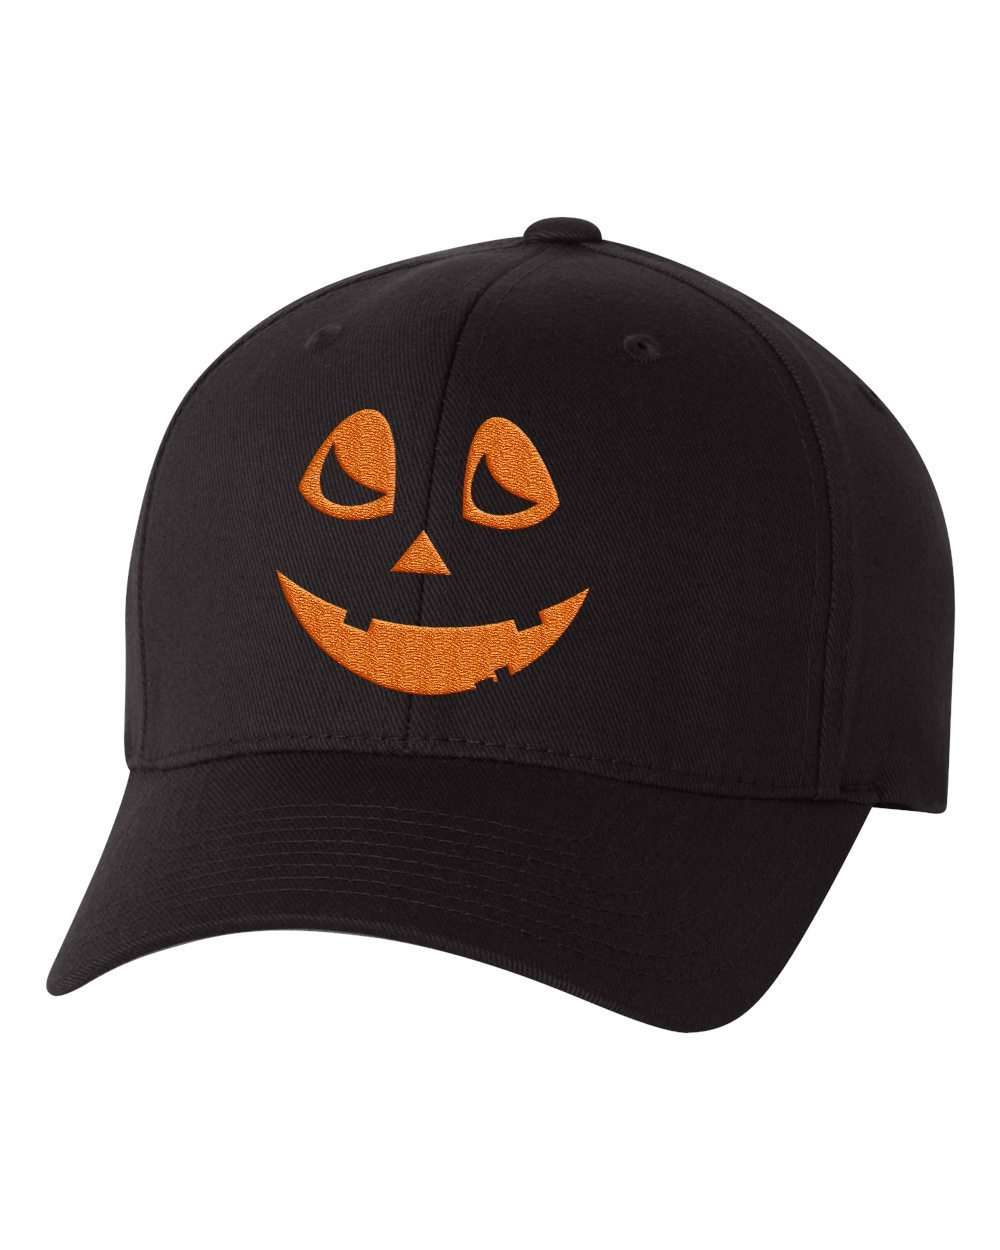 Hat - Halloween Pumpkin Custom Flex Fit Hat, Baseball Hat With Jack Olantern